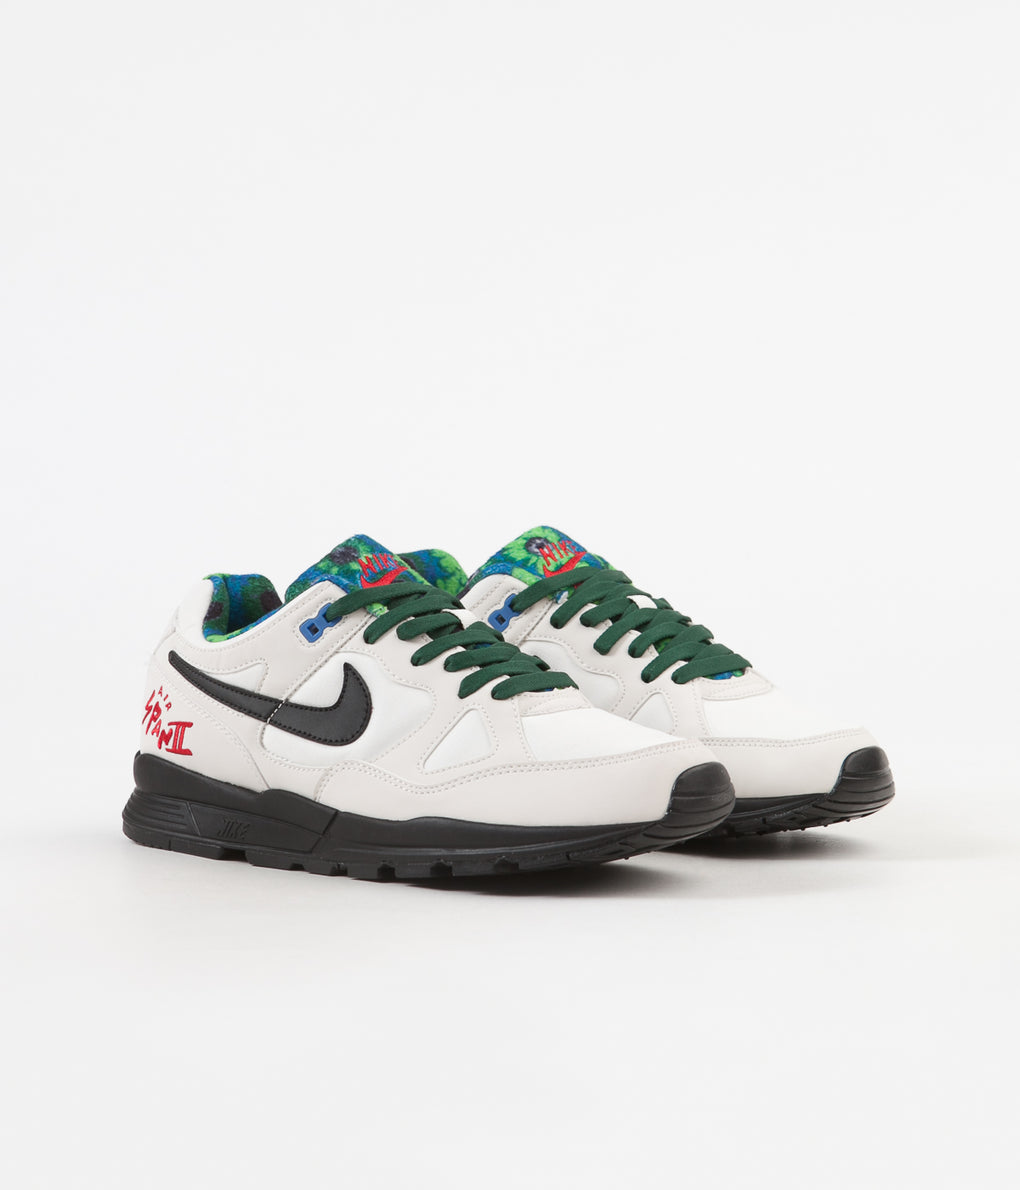 Nike Air Span II SE Shoes - Phantom / Black - Mountain Blue - Fir